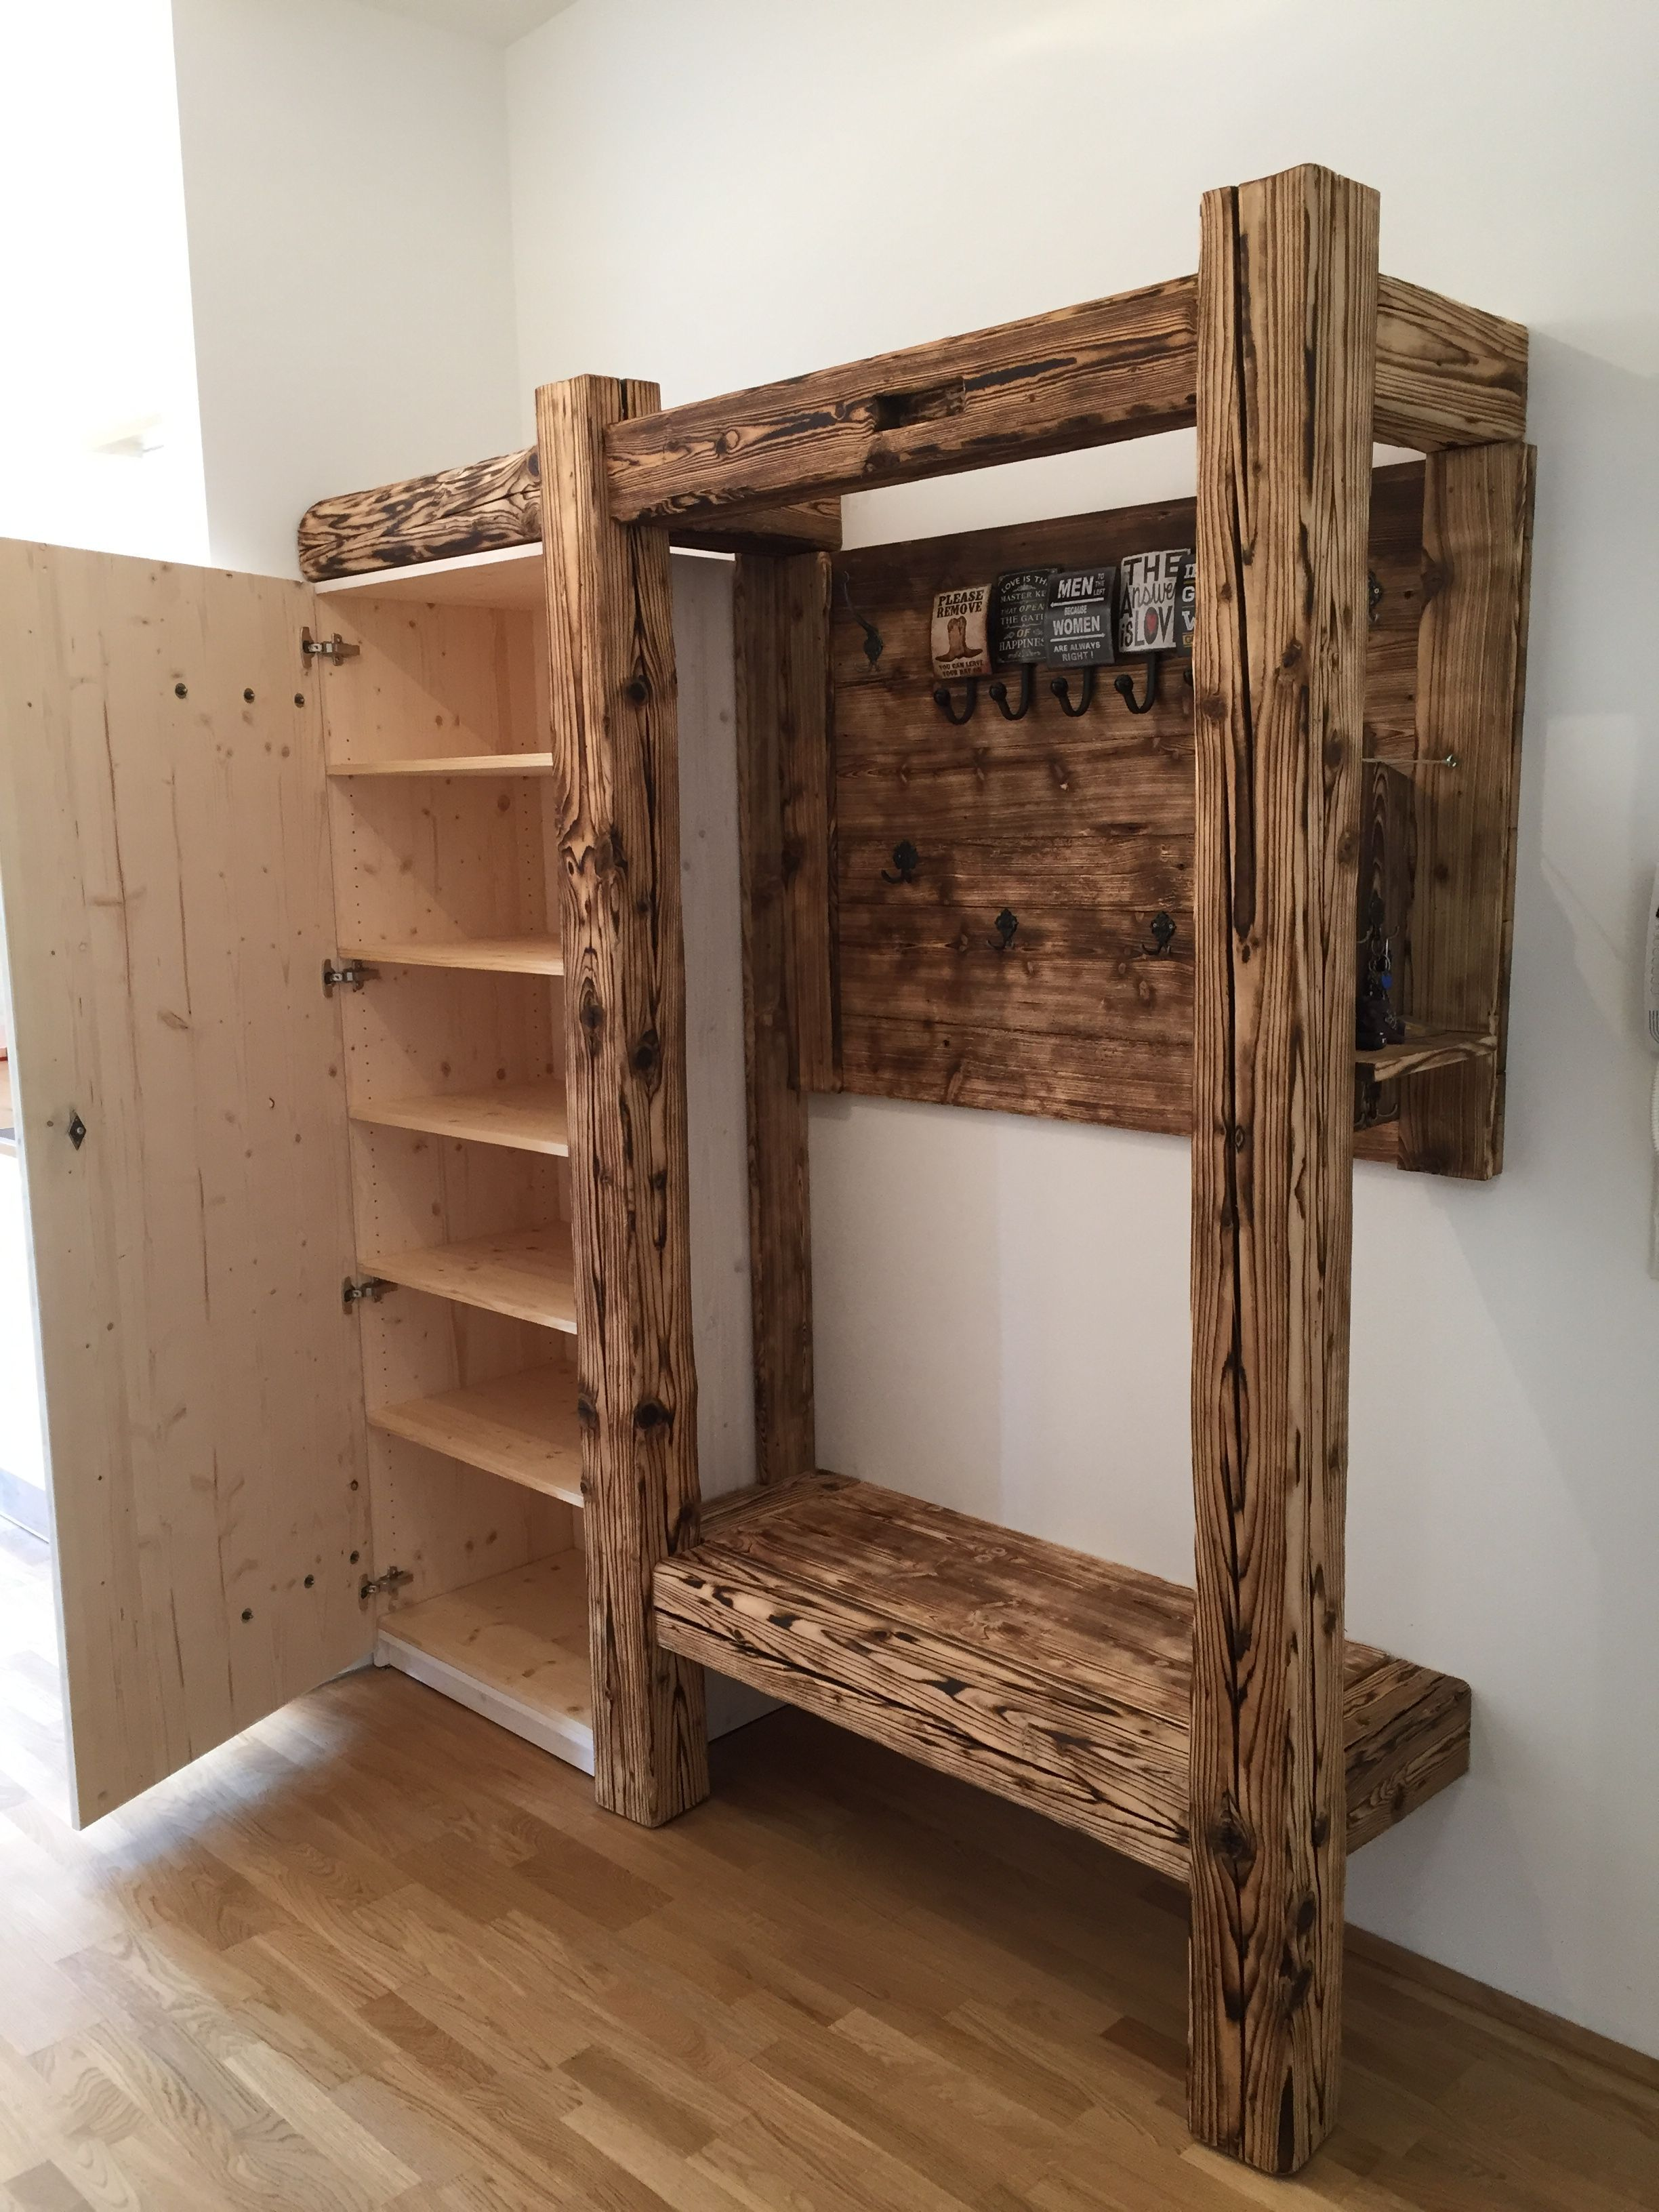 Garderobe Aus Altholz Garderobe Holz Altholz Garderobe Altholz Ideen